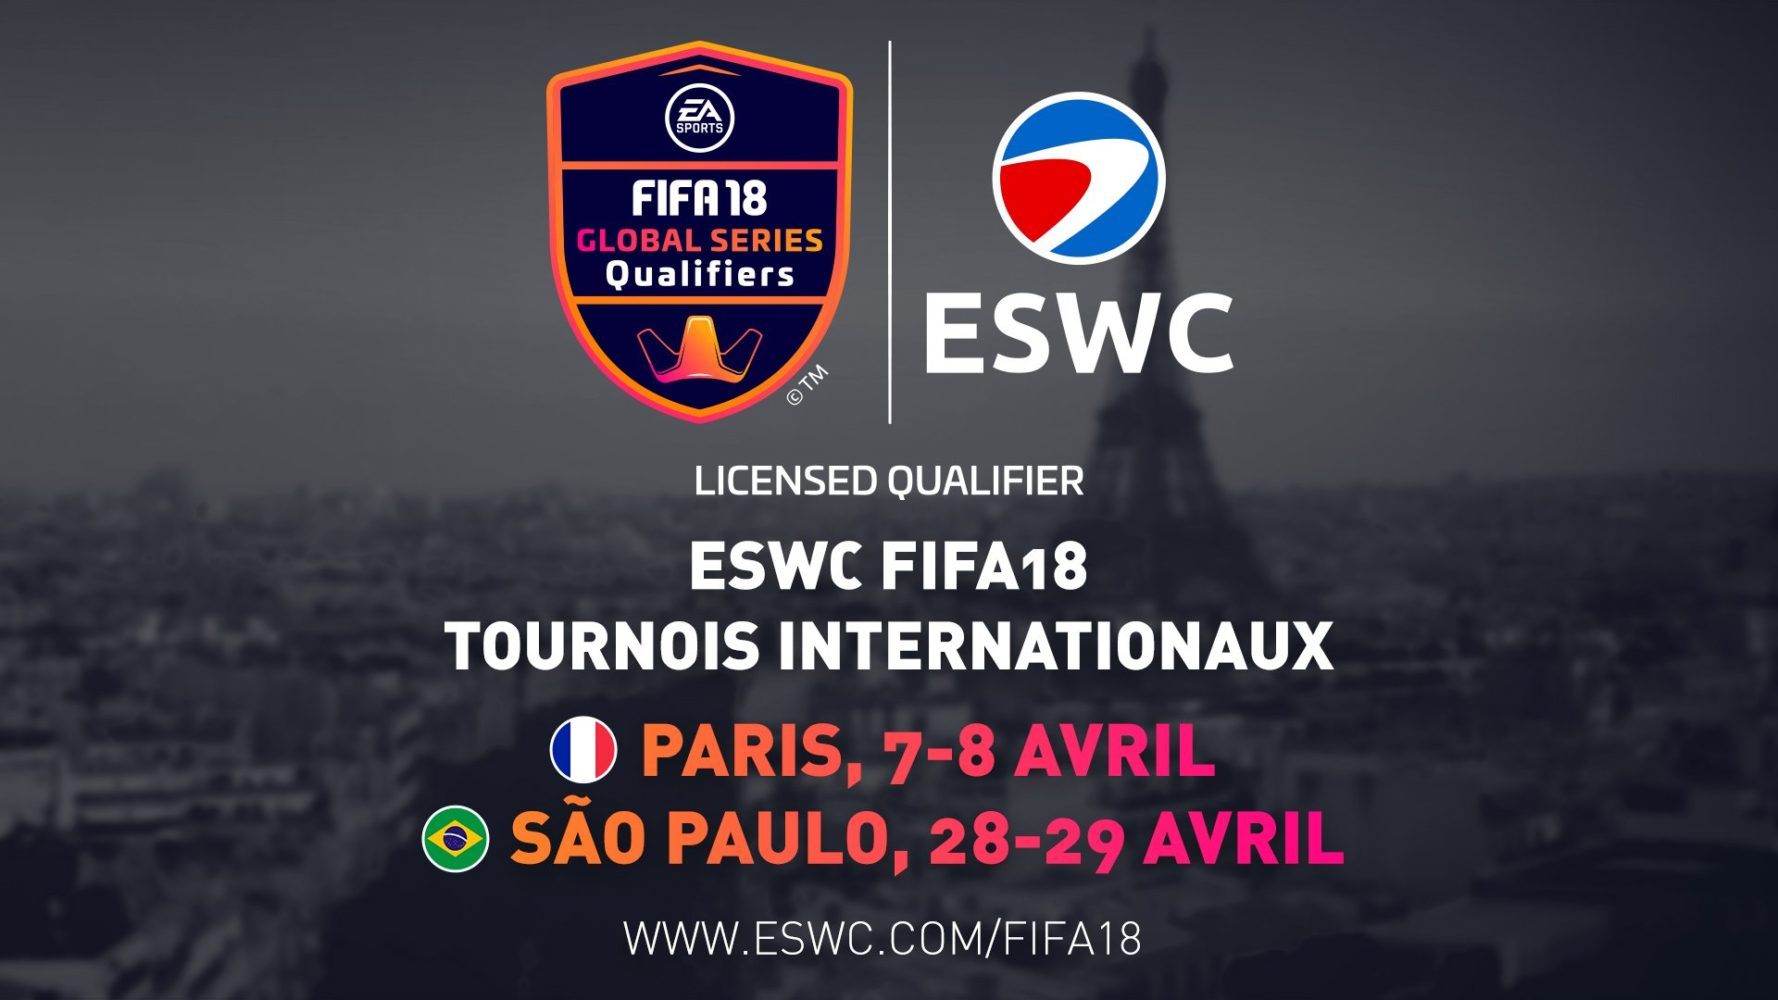 ESWC FIFA18-Paris-Sao-Paulo-Global-Series-FIFA-eWorld-Cup-2018